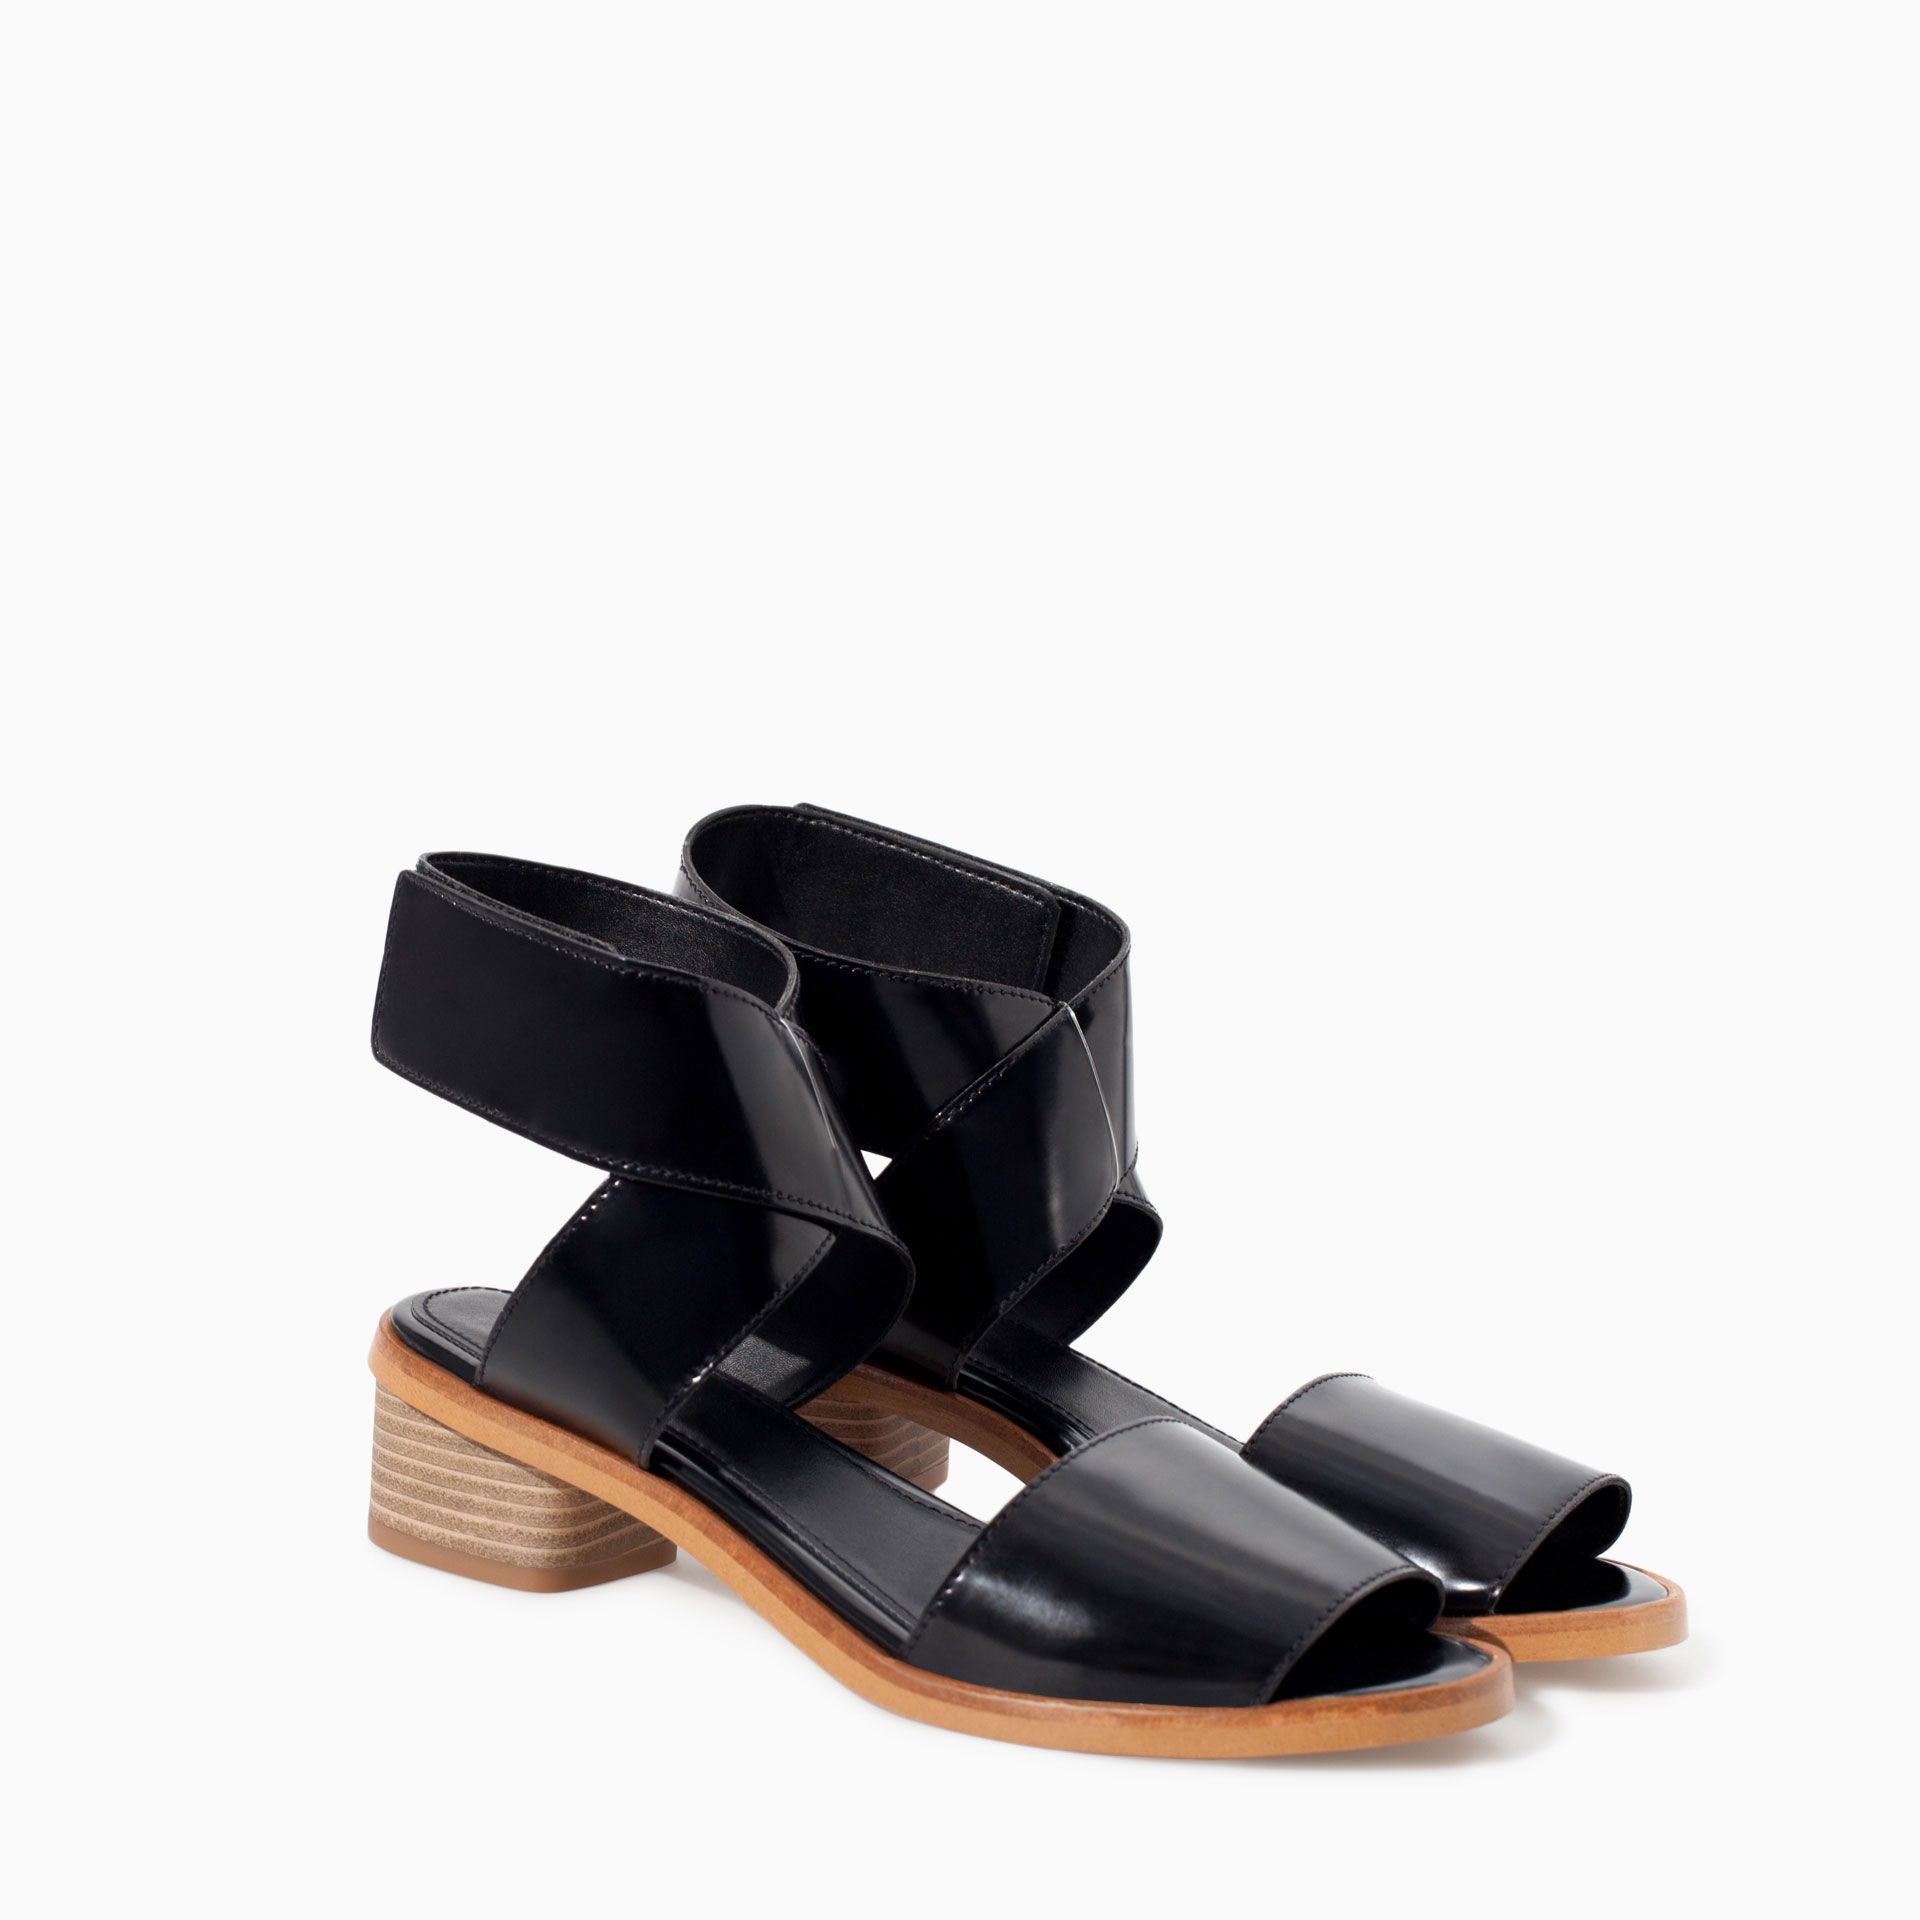 3e7cf16e770 ANKLE STRAP SANDAL WITH VELCRO - Shoes - TRF - SALE